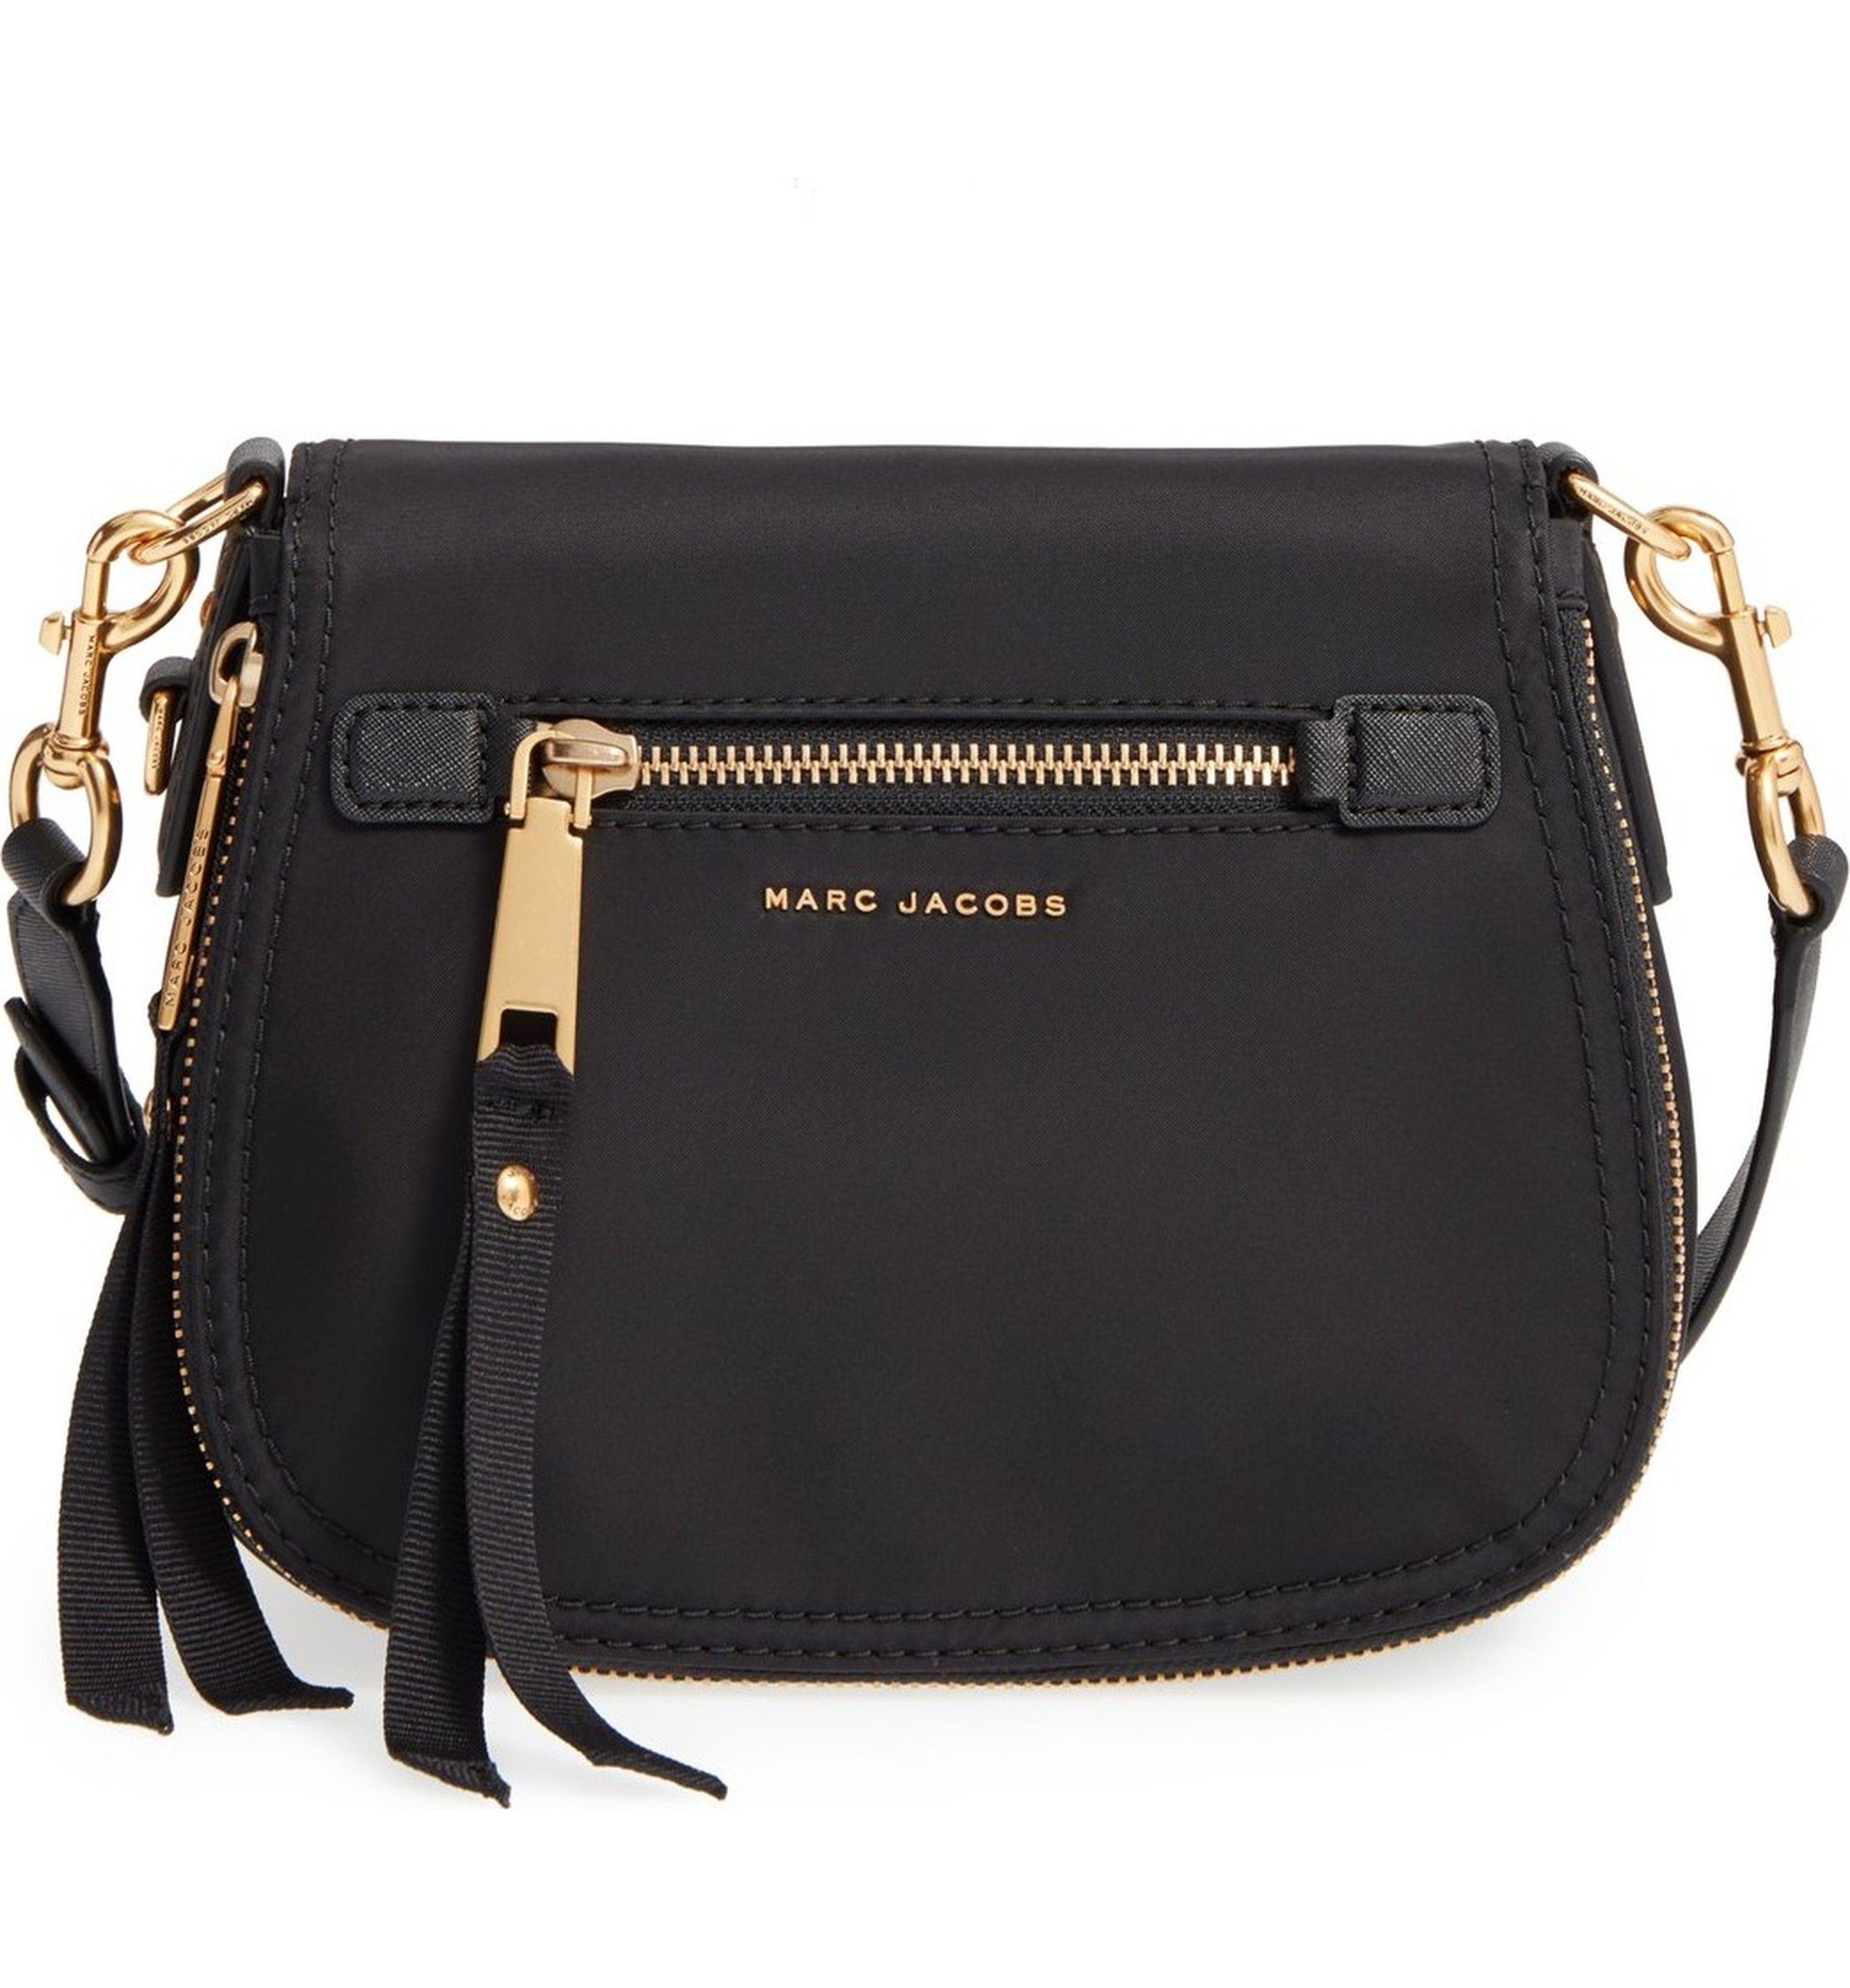 6417791710b6 Main Image - MARC JACOBS Trooper - Small Nomad Nylon Crossbody Bag ...